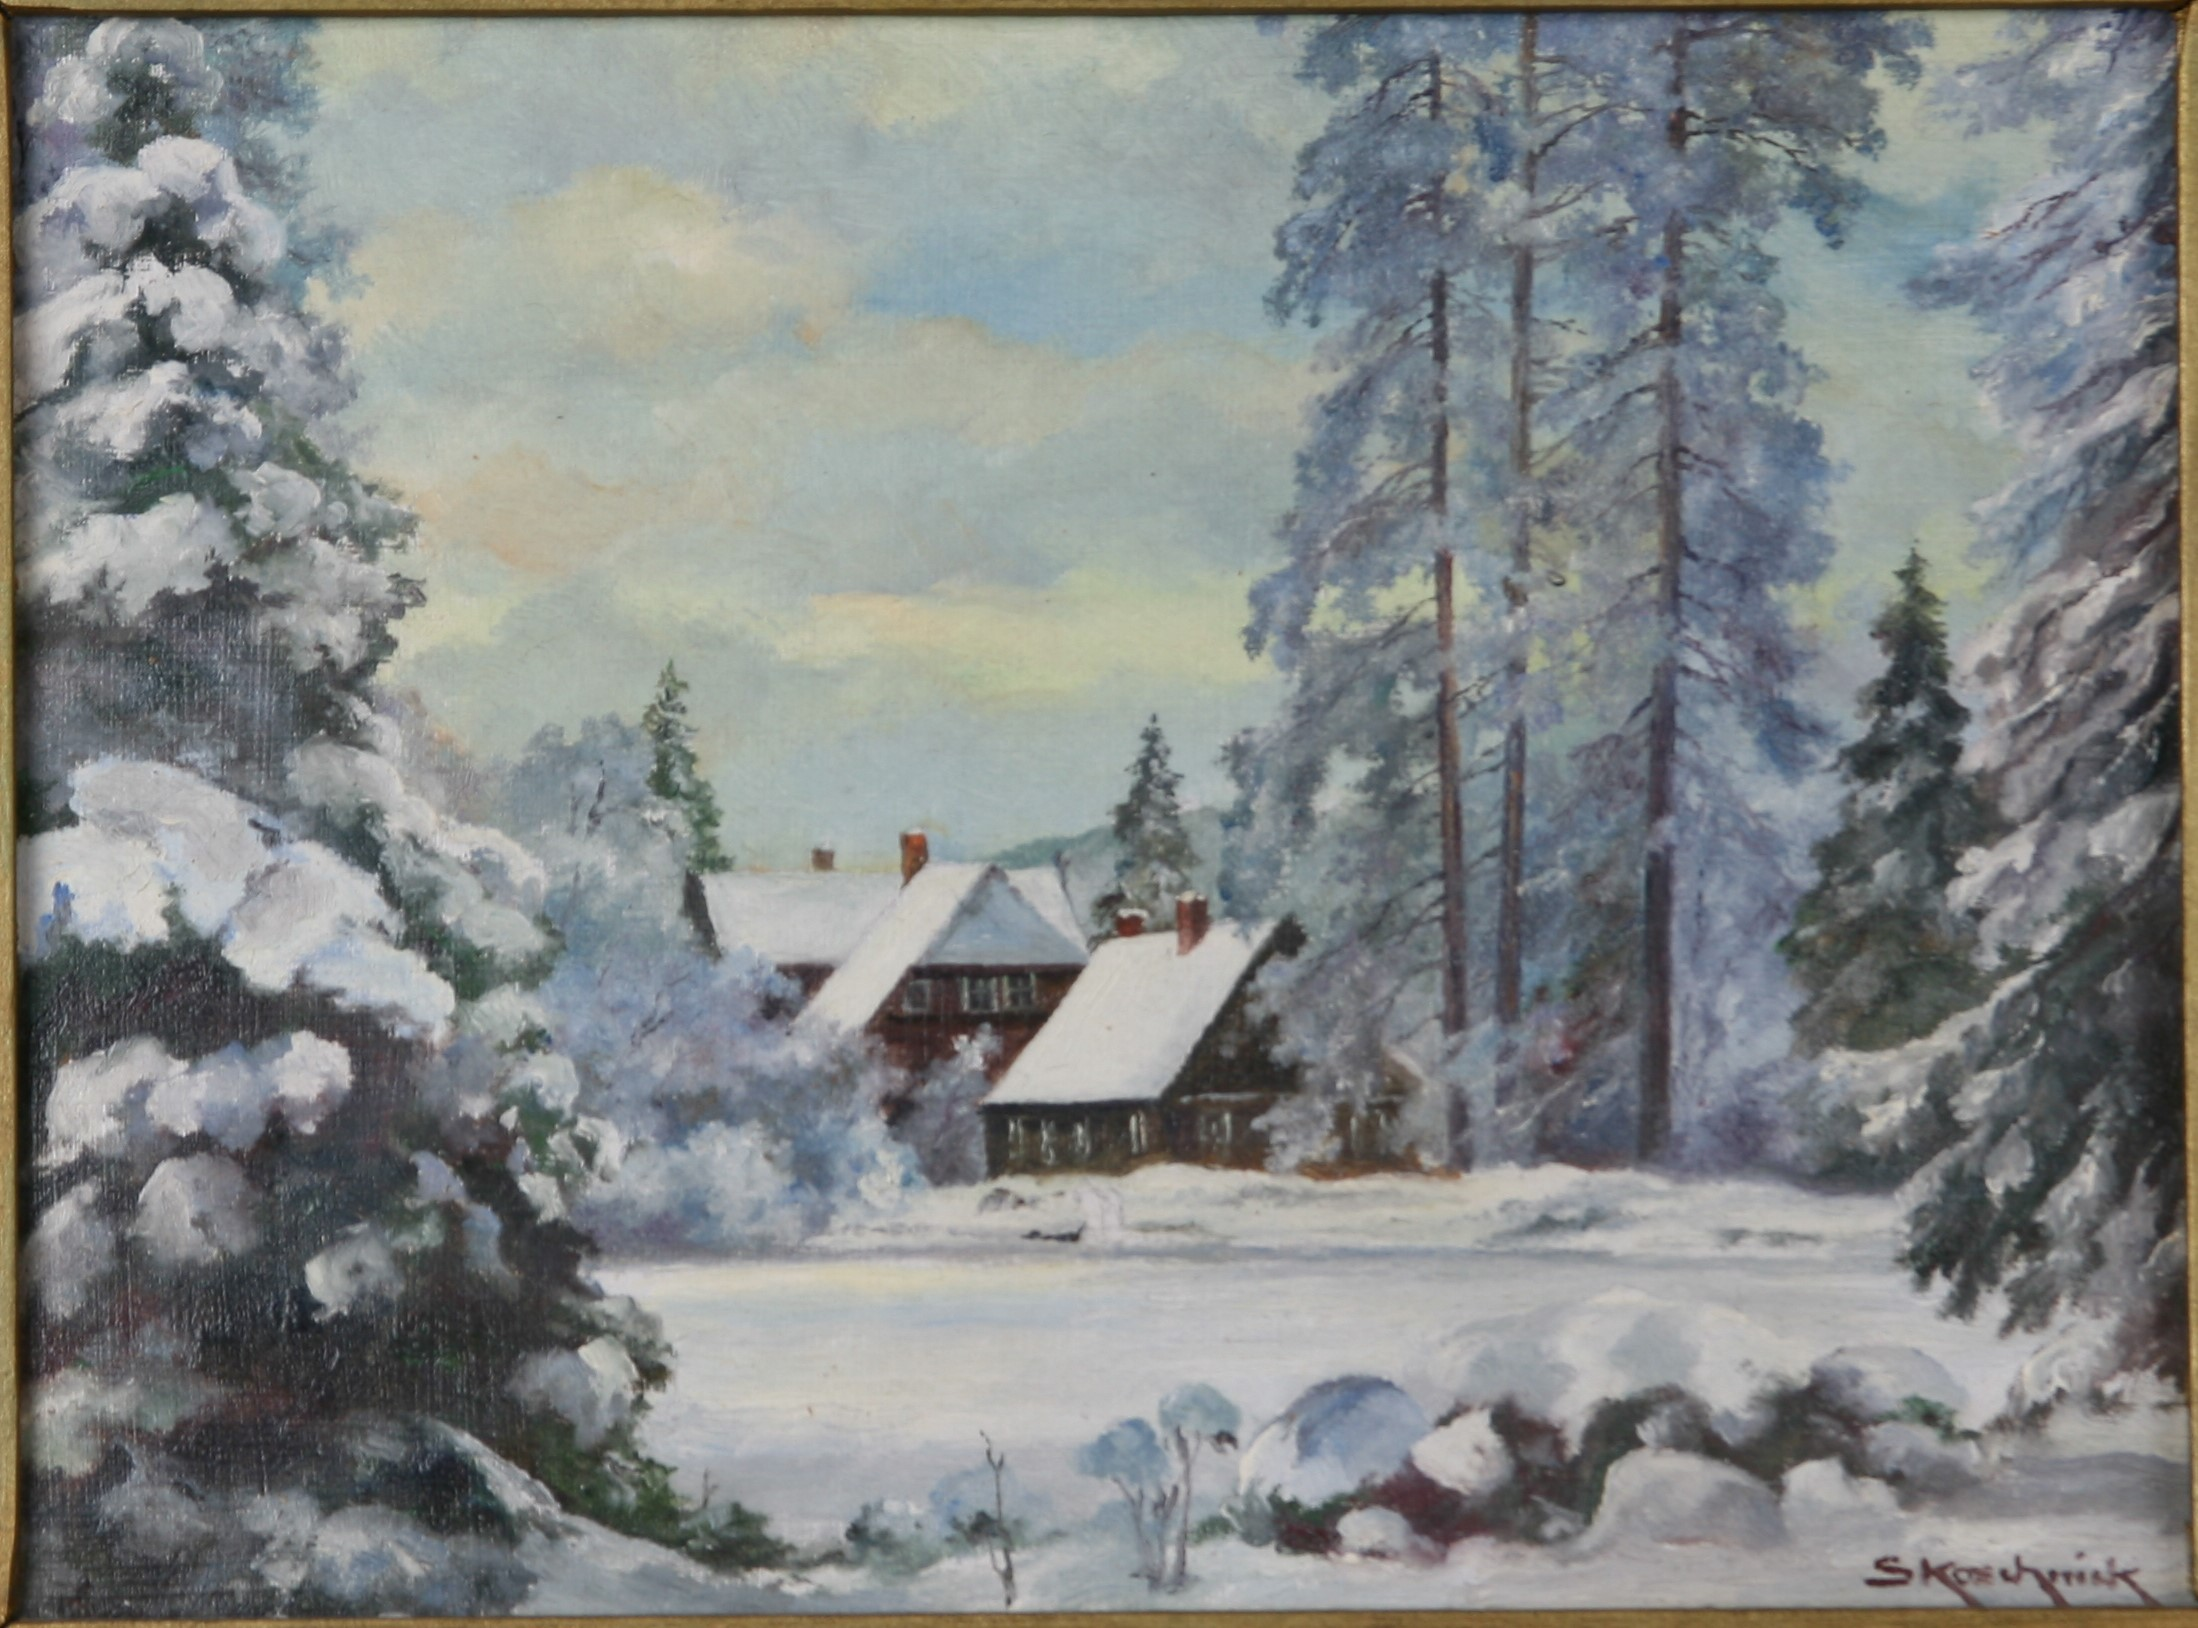 Winter im Christianental (Harzmuseum Wernigerode CC BY-NC-SA)